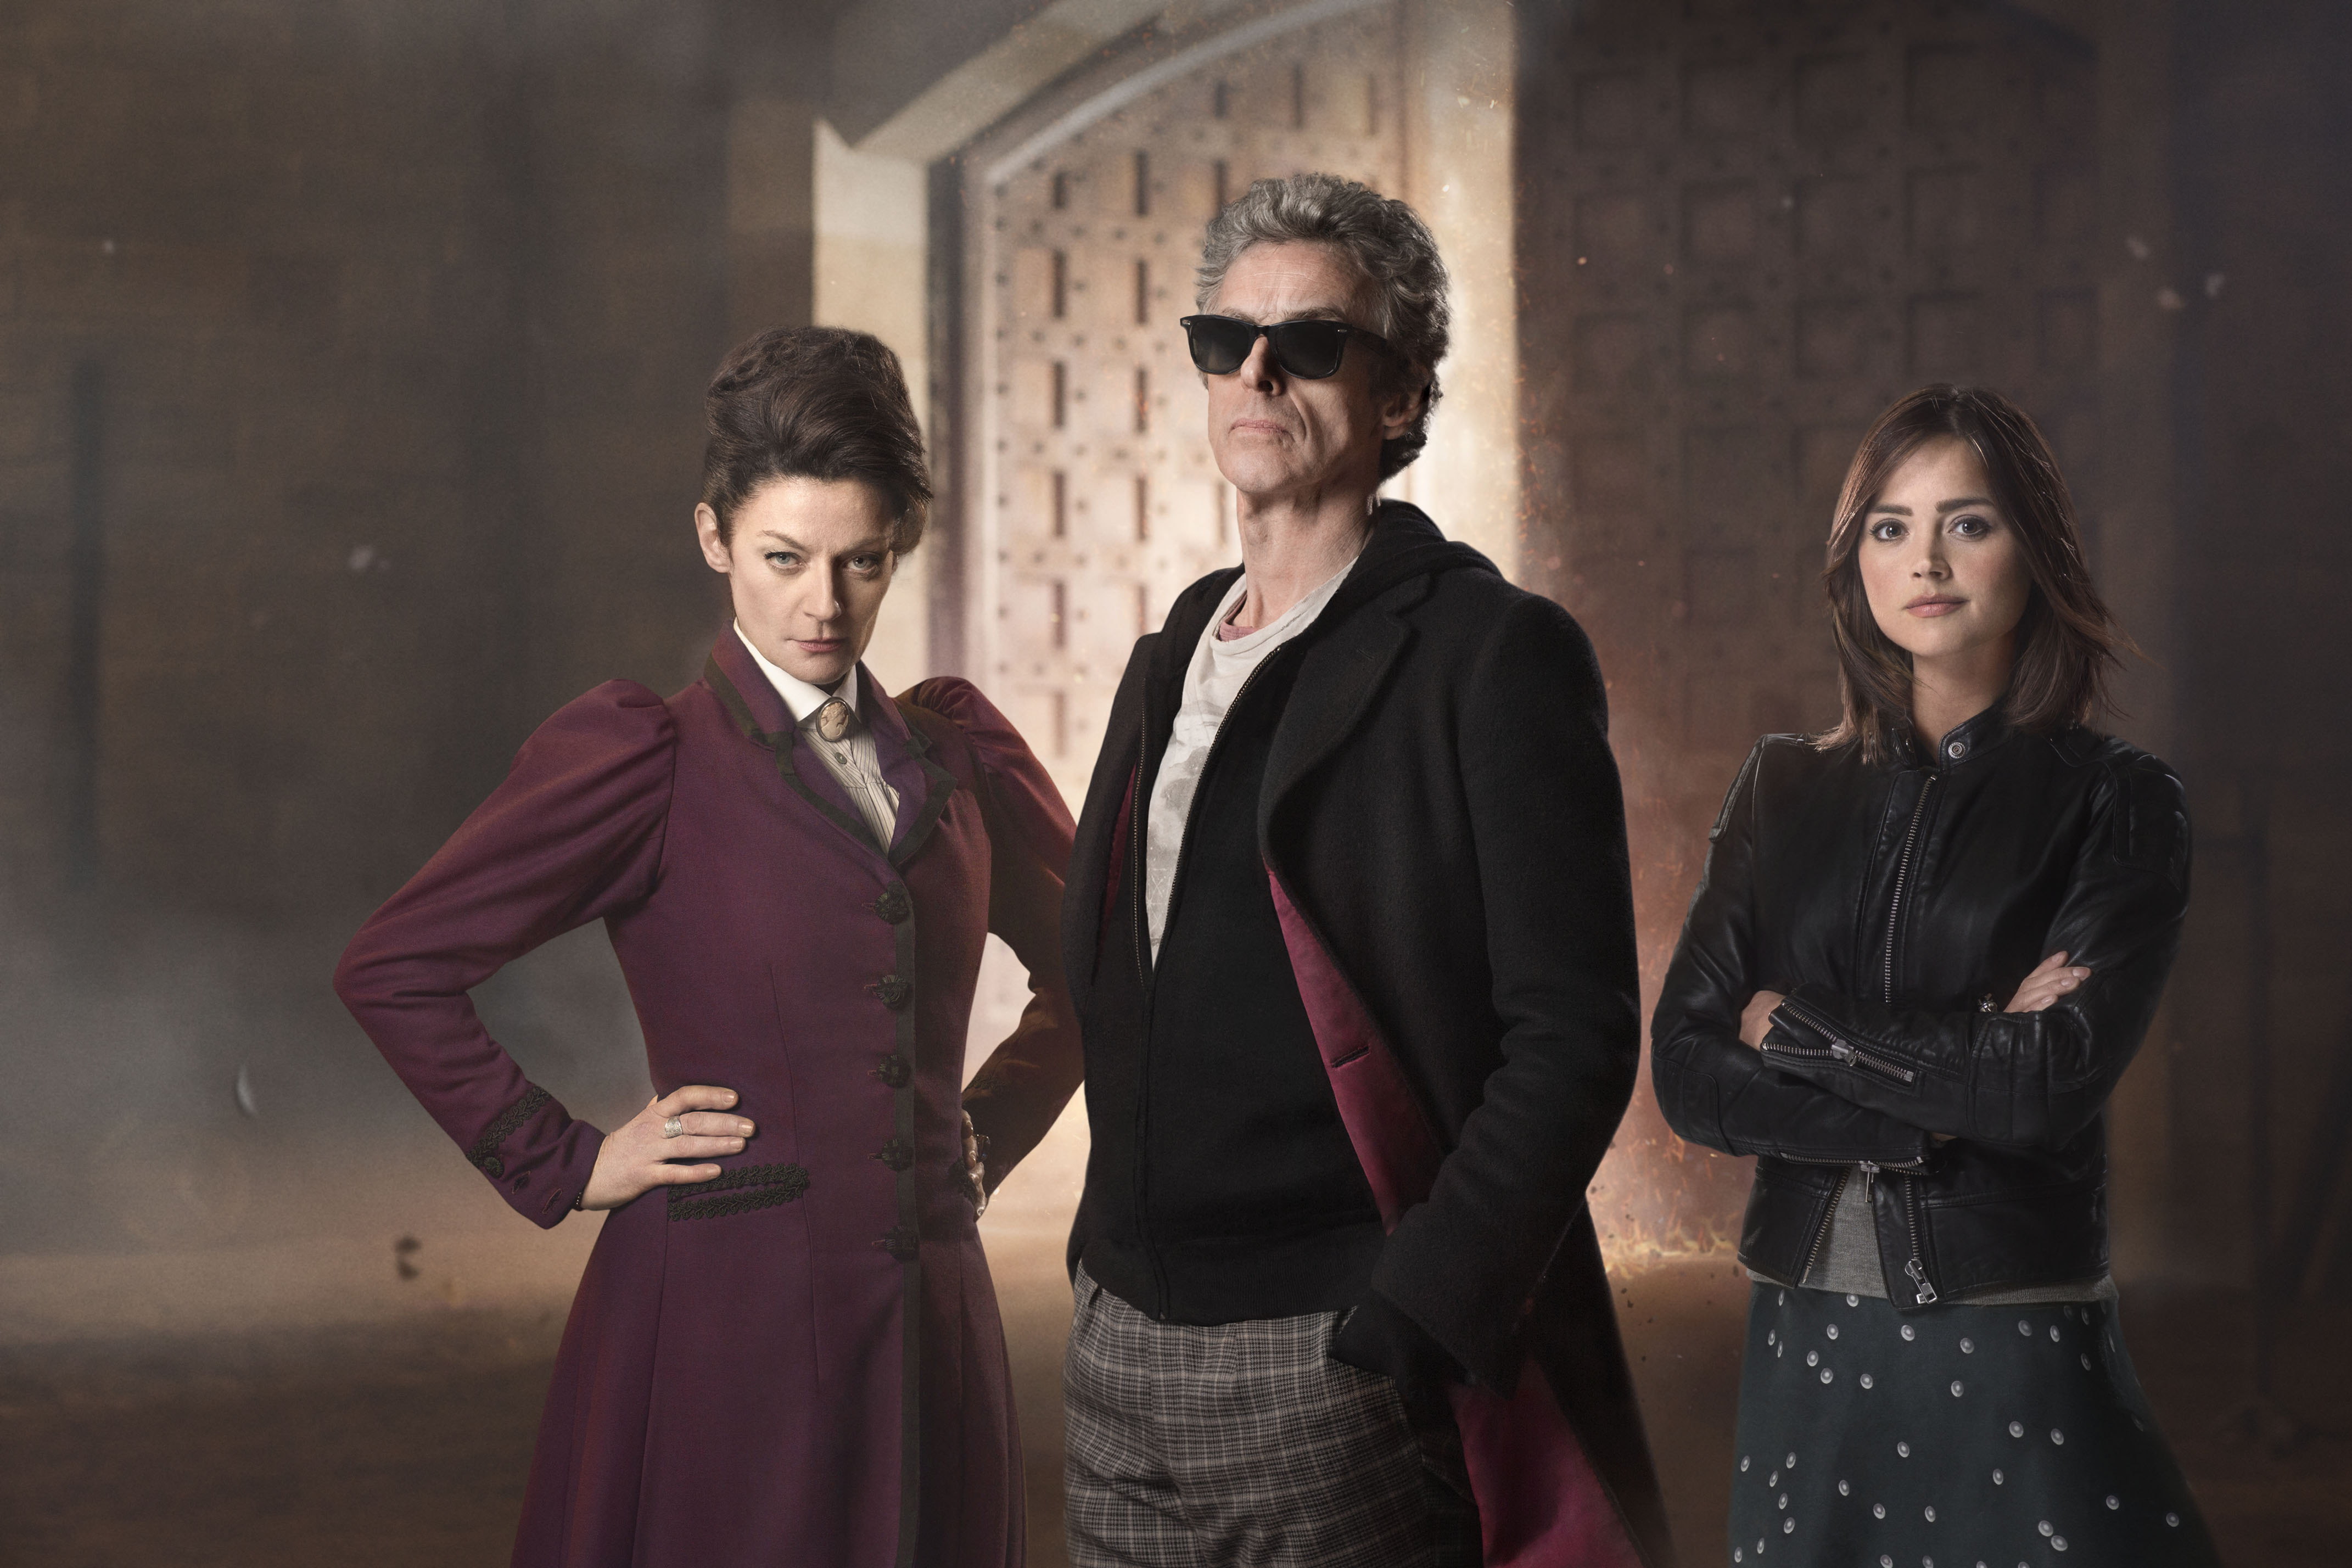 Picture shows: Michelle Gomez as Missy, Peter Capaldi as the Doctor and Jenna Coleman as Clara